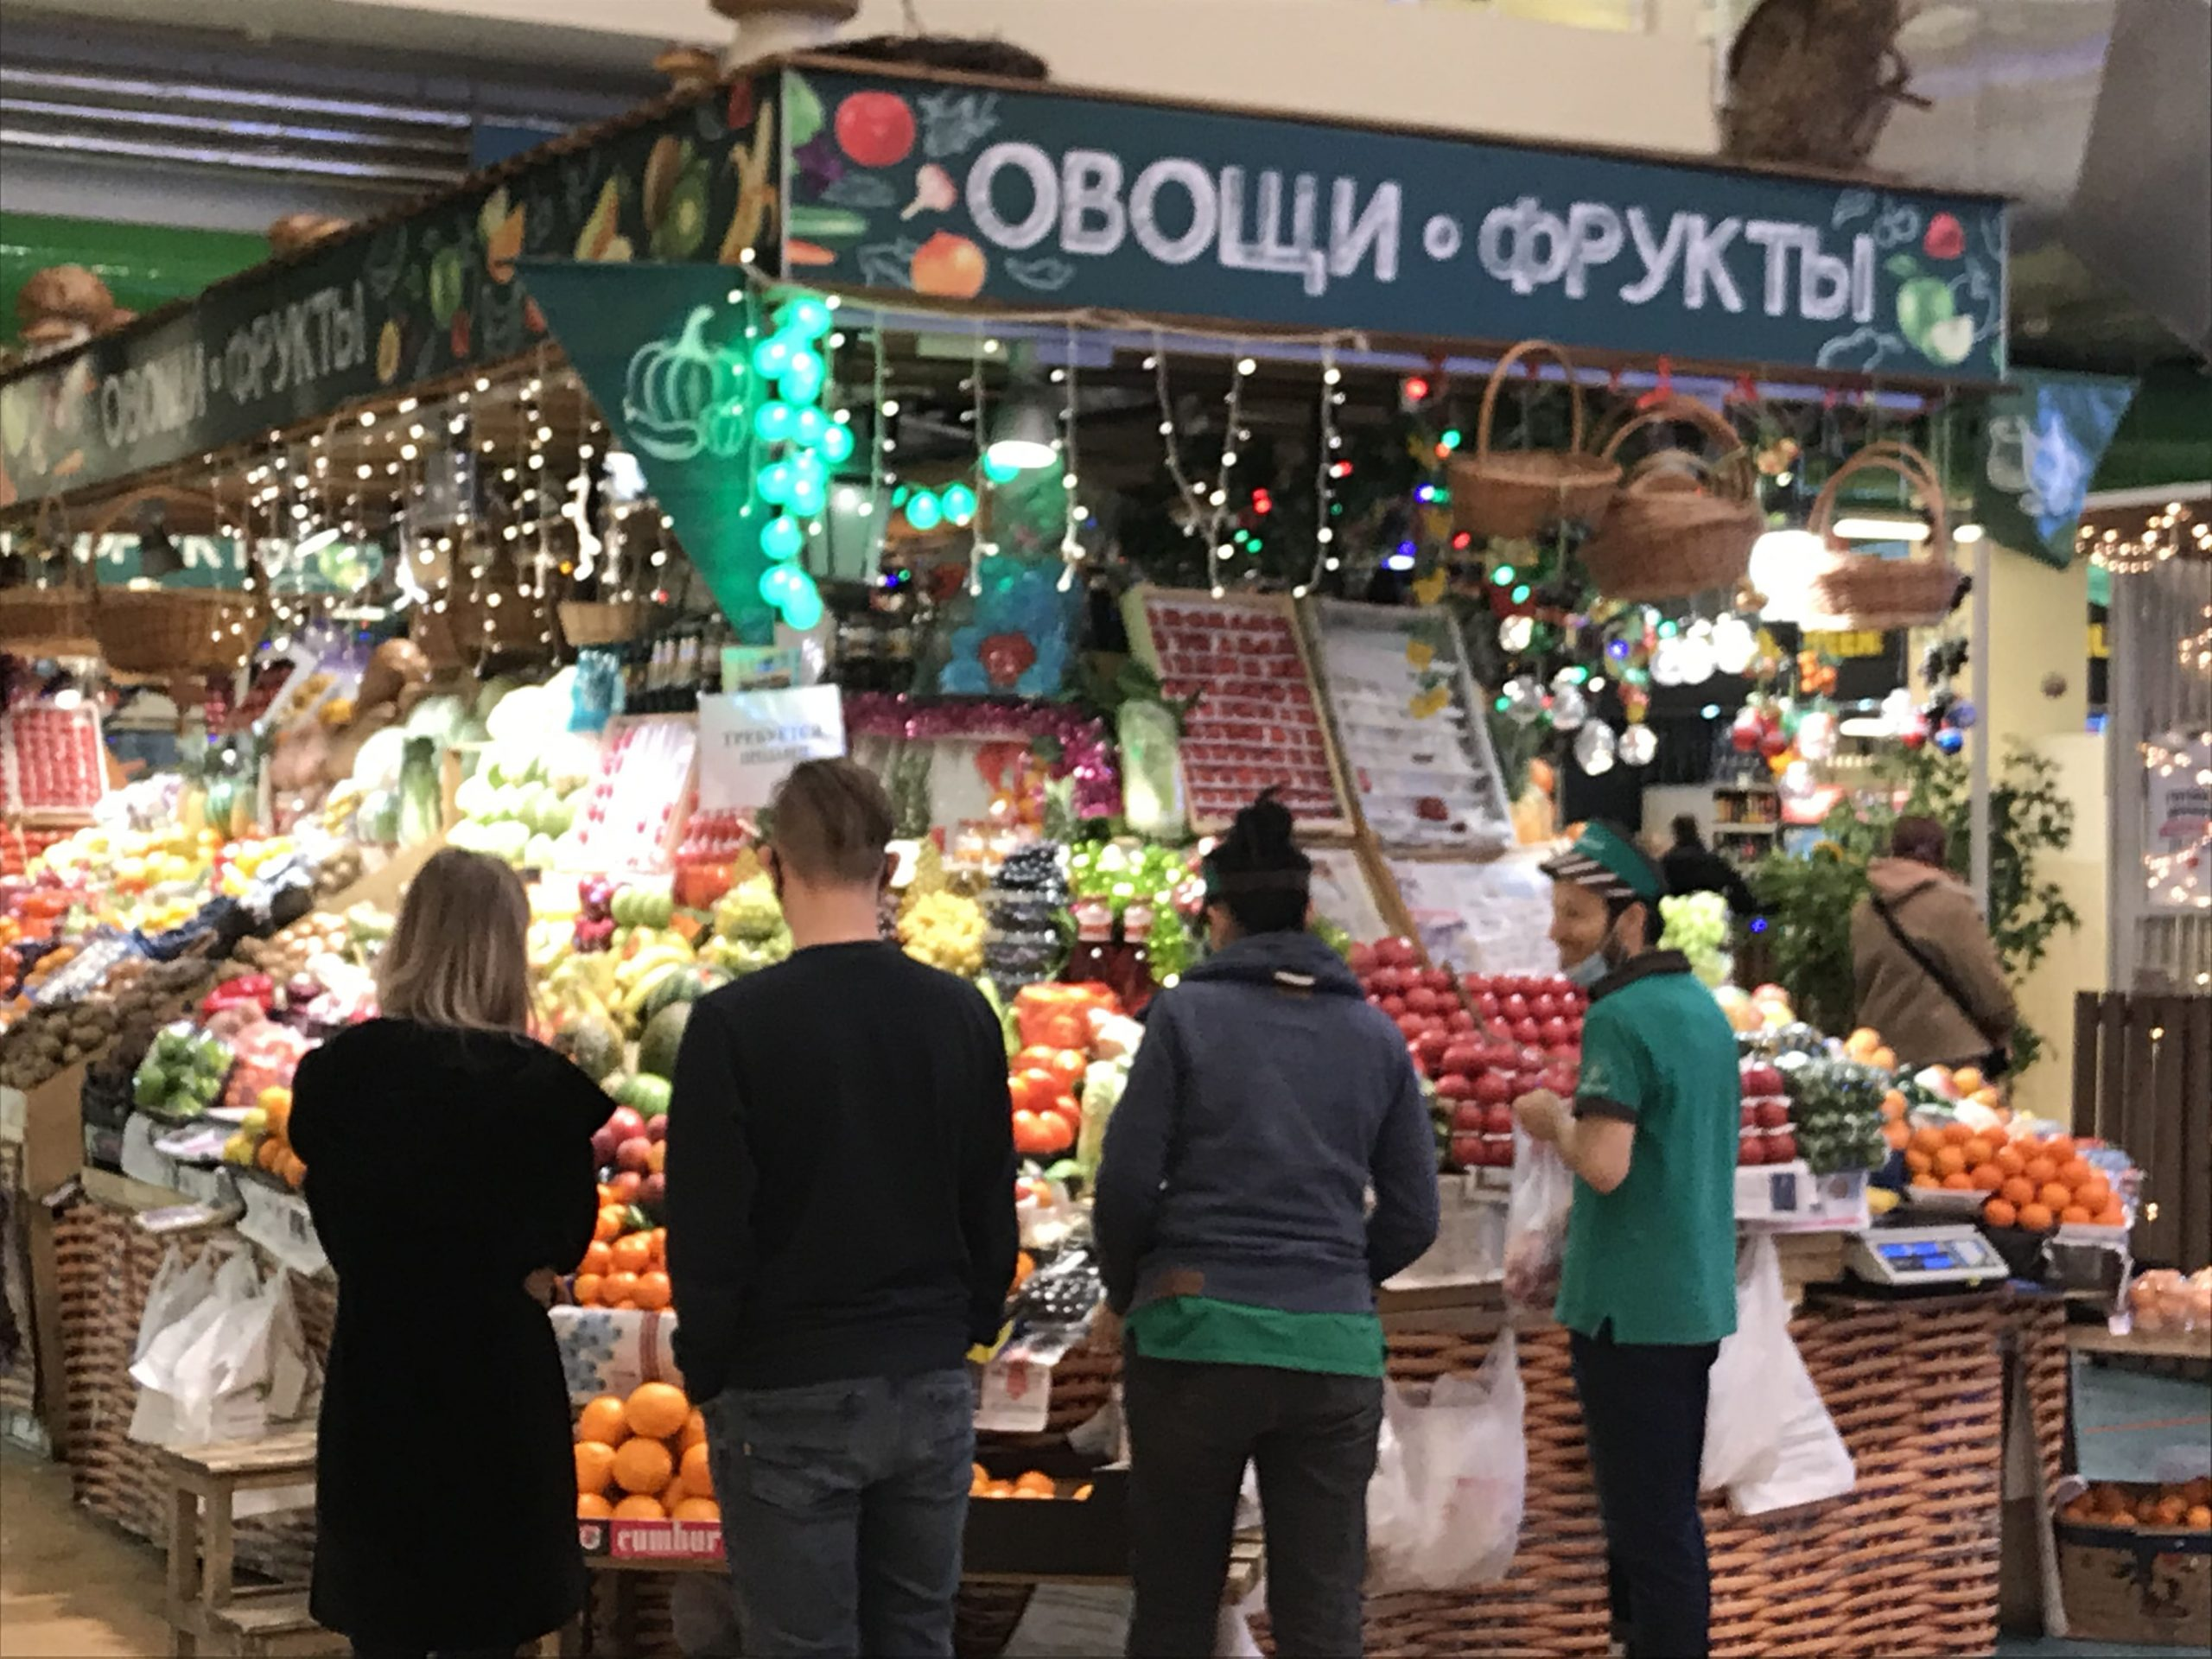 Summing up: key trends of Russian retailers in 2020